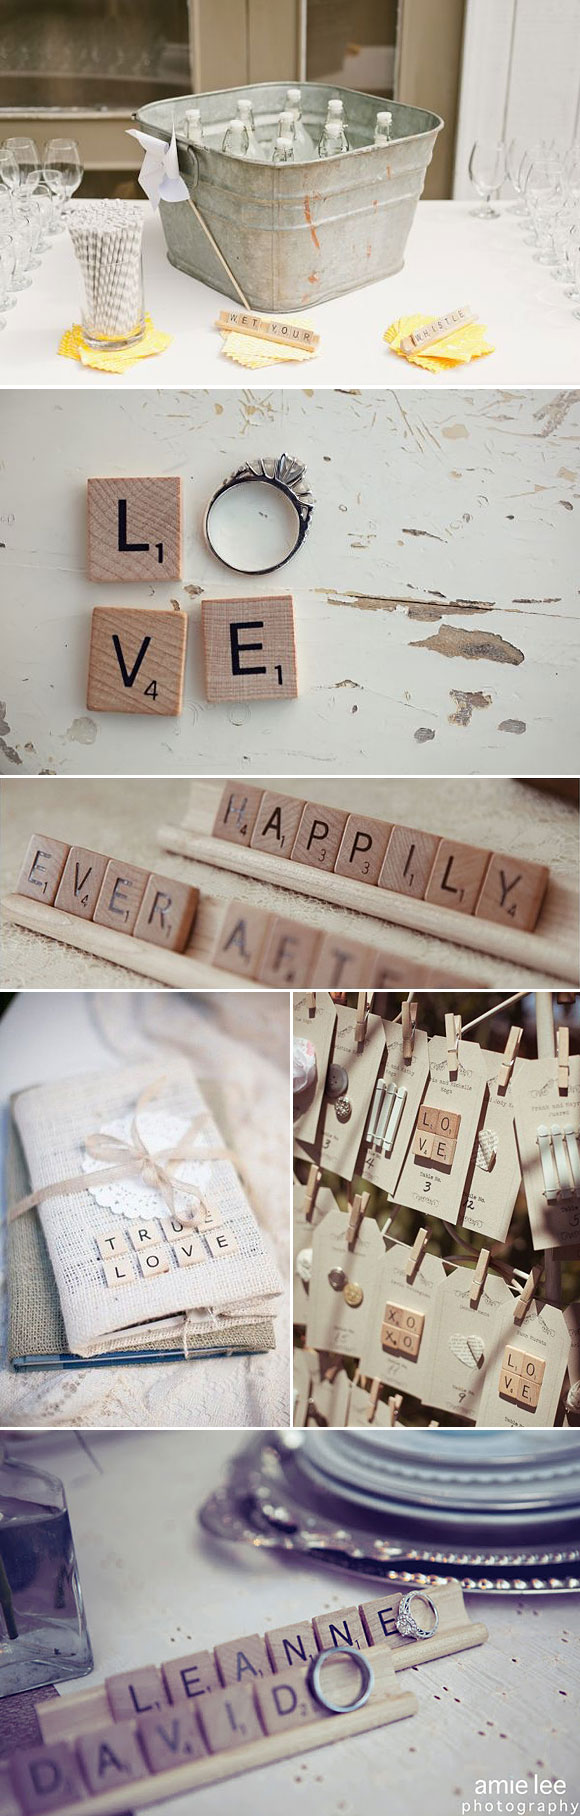 Ideas para decorar tu boda con letras del scrabble